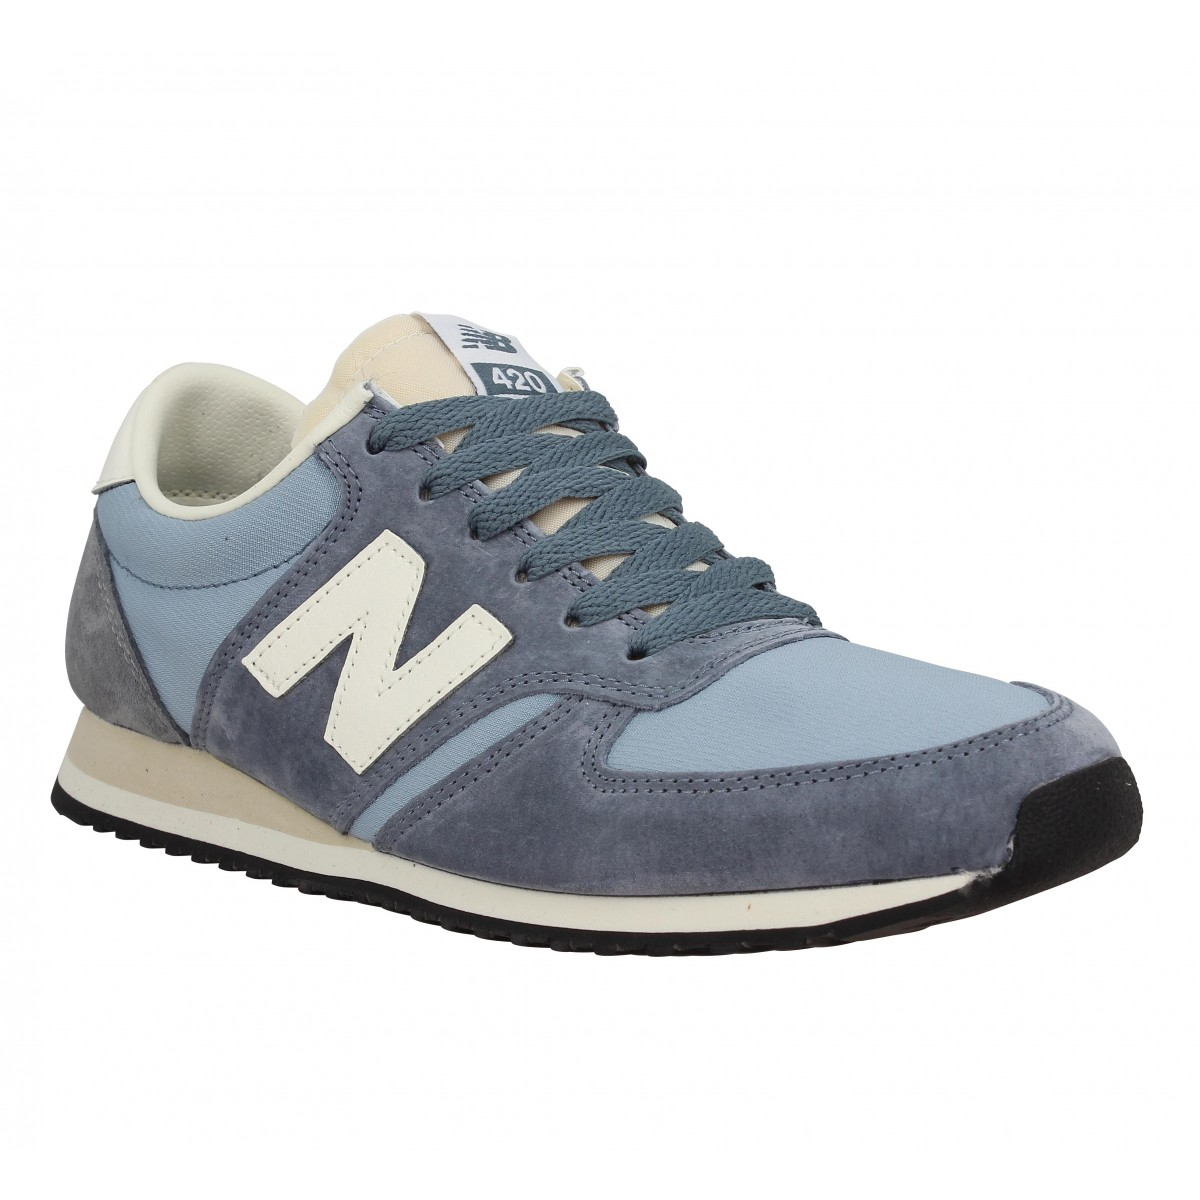 Baskets NEW BALANCE 420 velours + toile Homme Bleu + Gris